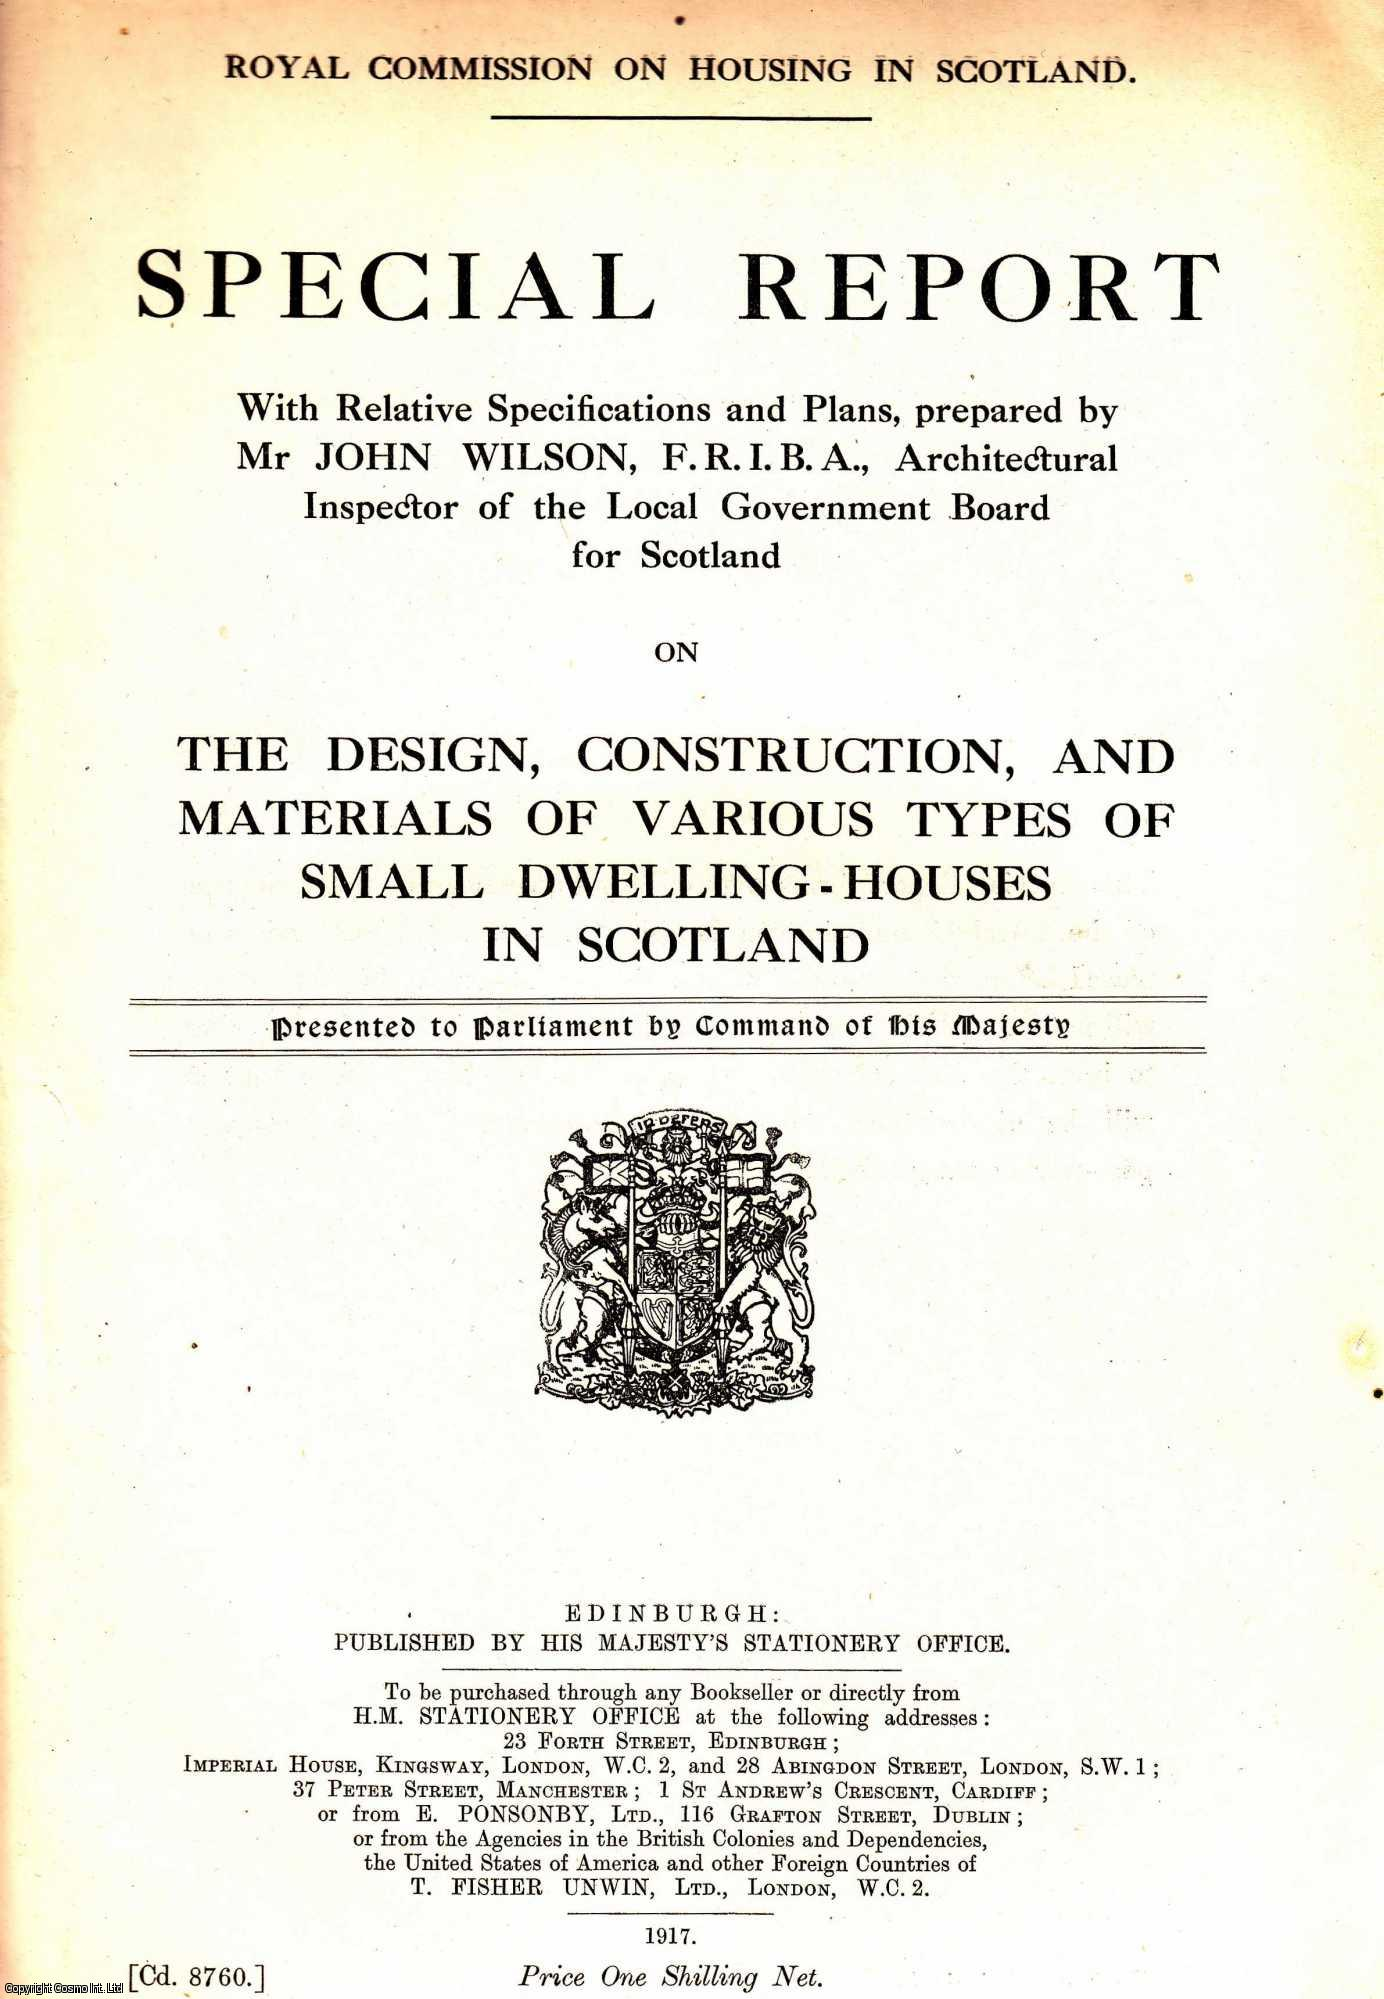 HOUSING IN SCOTLAND. Special Report with Relative Specifications and Plans, prepared by Mr John Wilson, F.R.I.B.A., Architectural Inspector of the Local Government Board for Scotland on The Design, Construction, and Materials of Various Types of Small Dwelling-Houses in Scotland. Royal Commission on Housing in Scotland. Cd. 8760., [Blue Book Report].